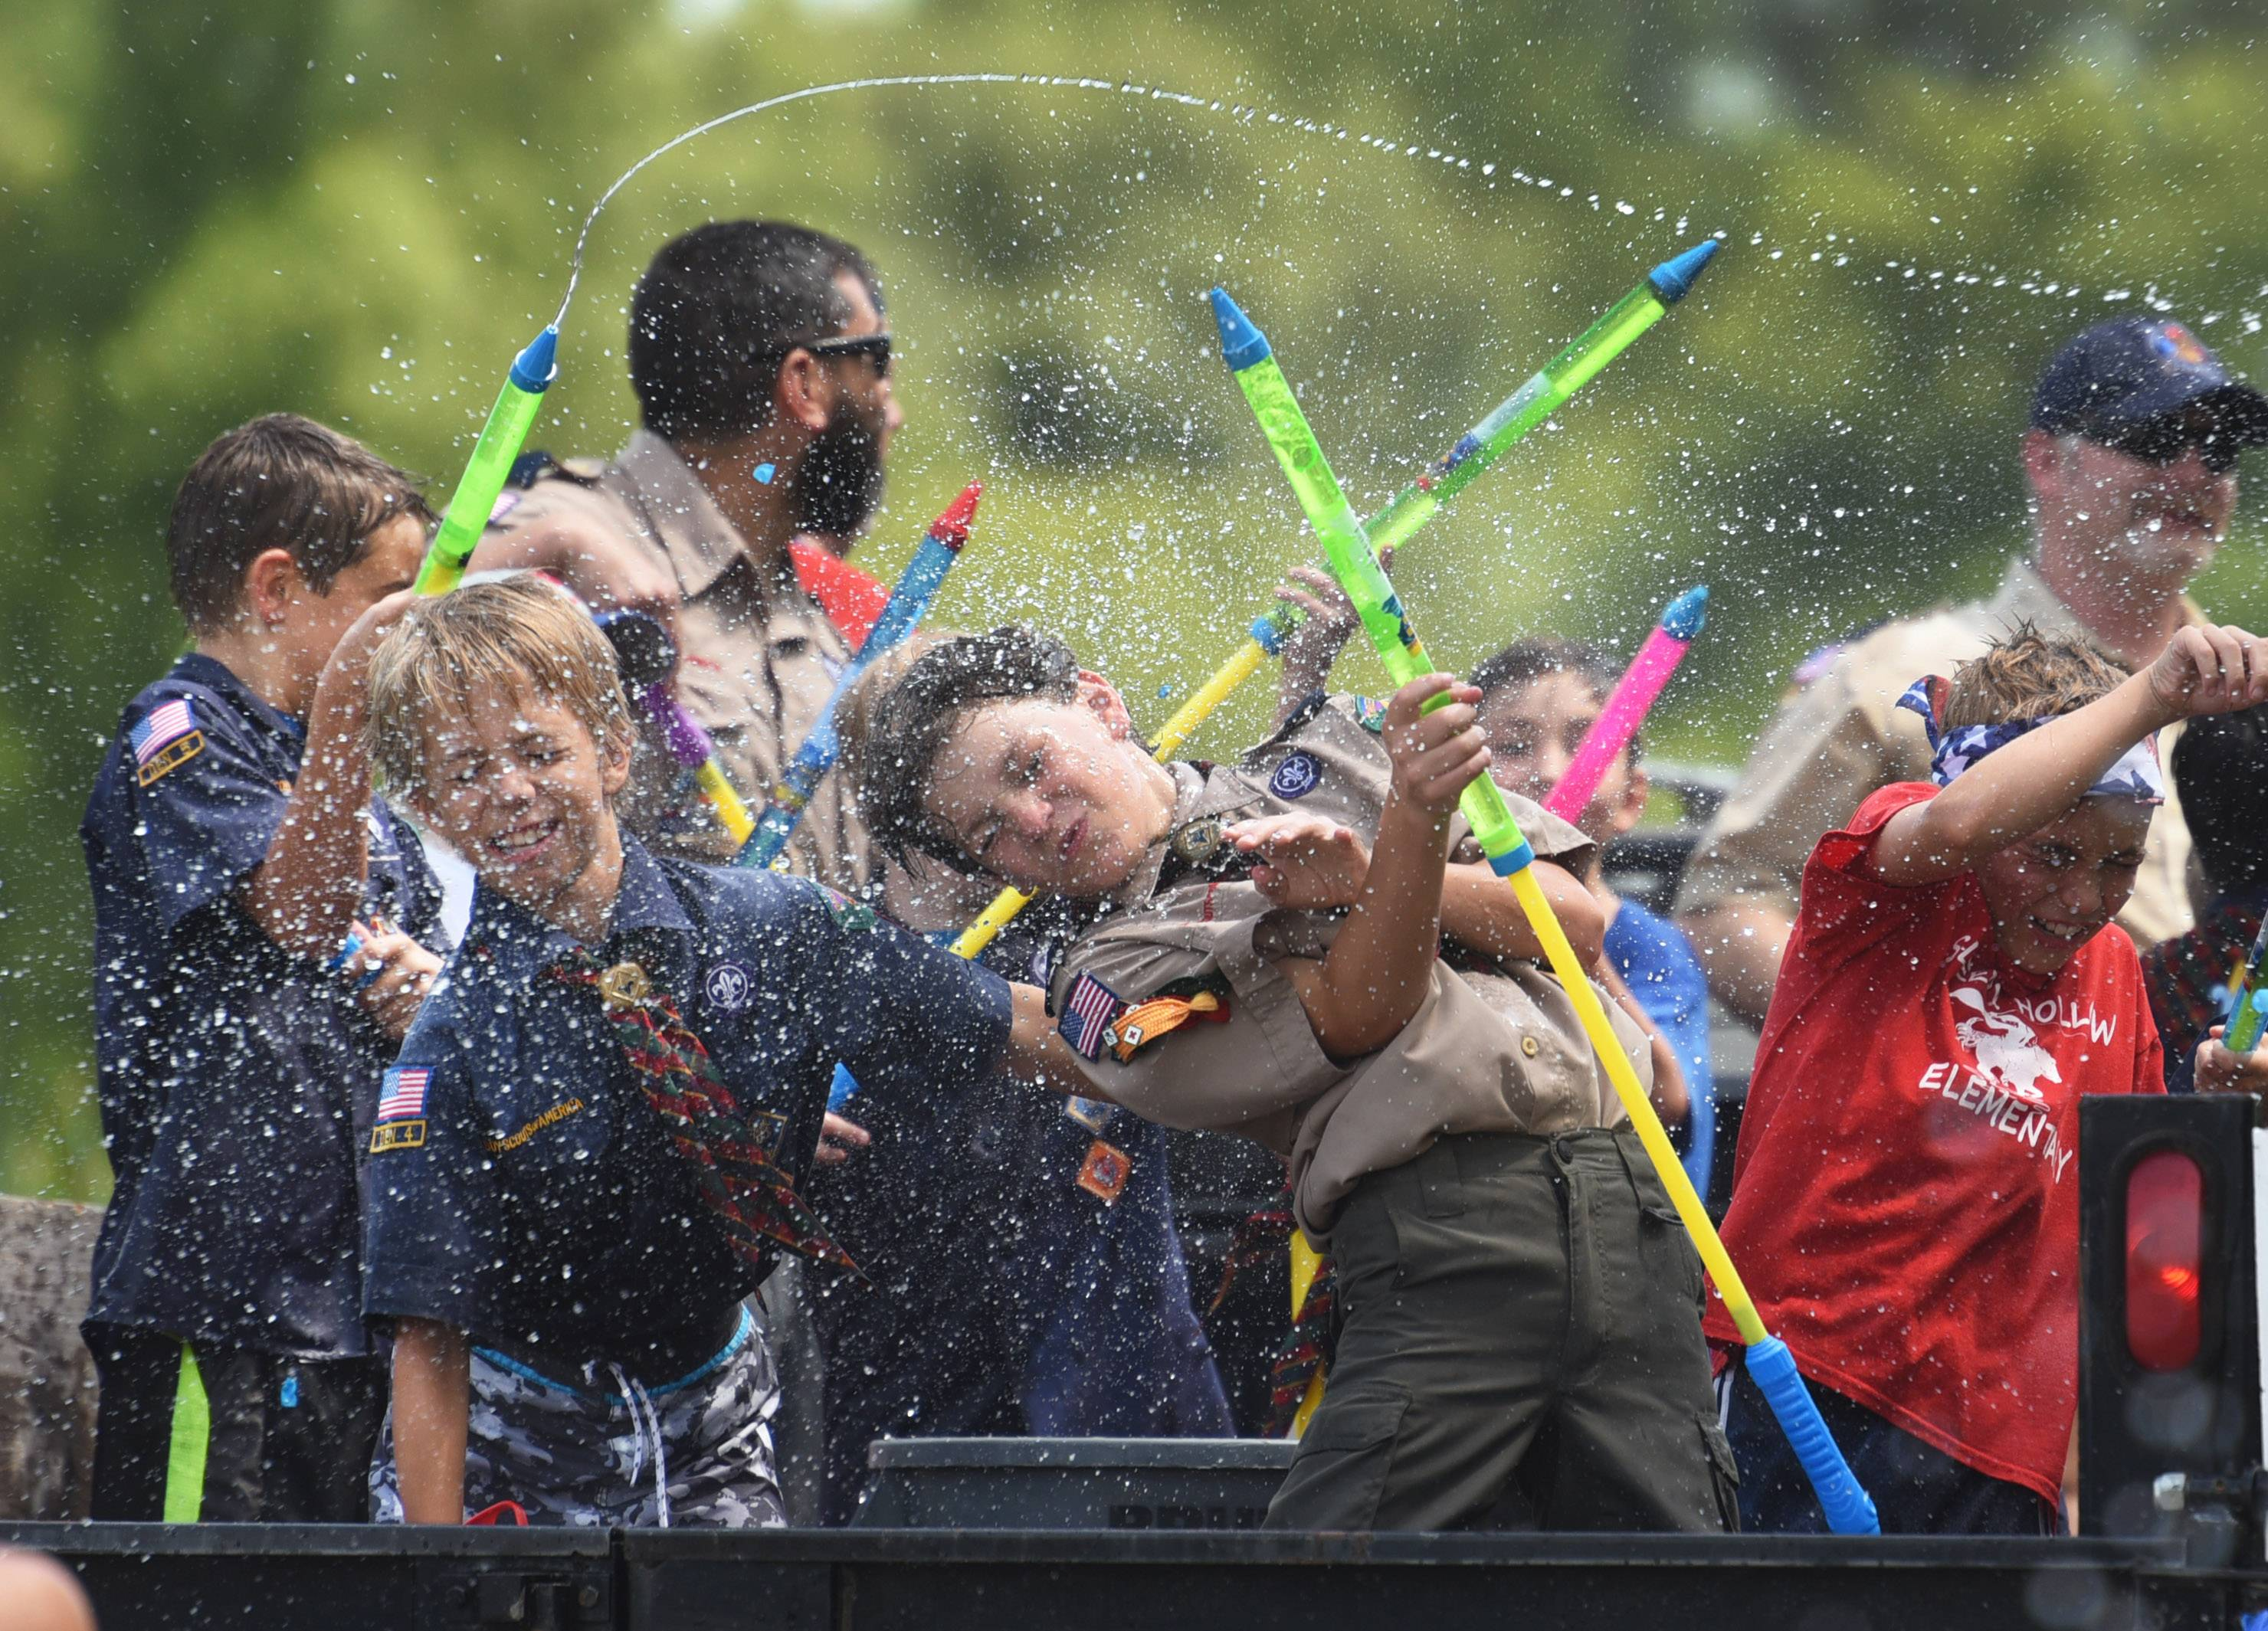 Members of the Sleepy Hollow Cub Scout Pack 88 Timmy Pribel, left, and Ian Bury, center, get hit with a water balloon during a battle between paradegoers and the scouts during Tuesday's Bill Ritchie Memorial Parade in Sleepy Hollow.